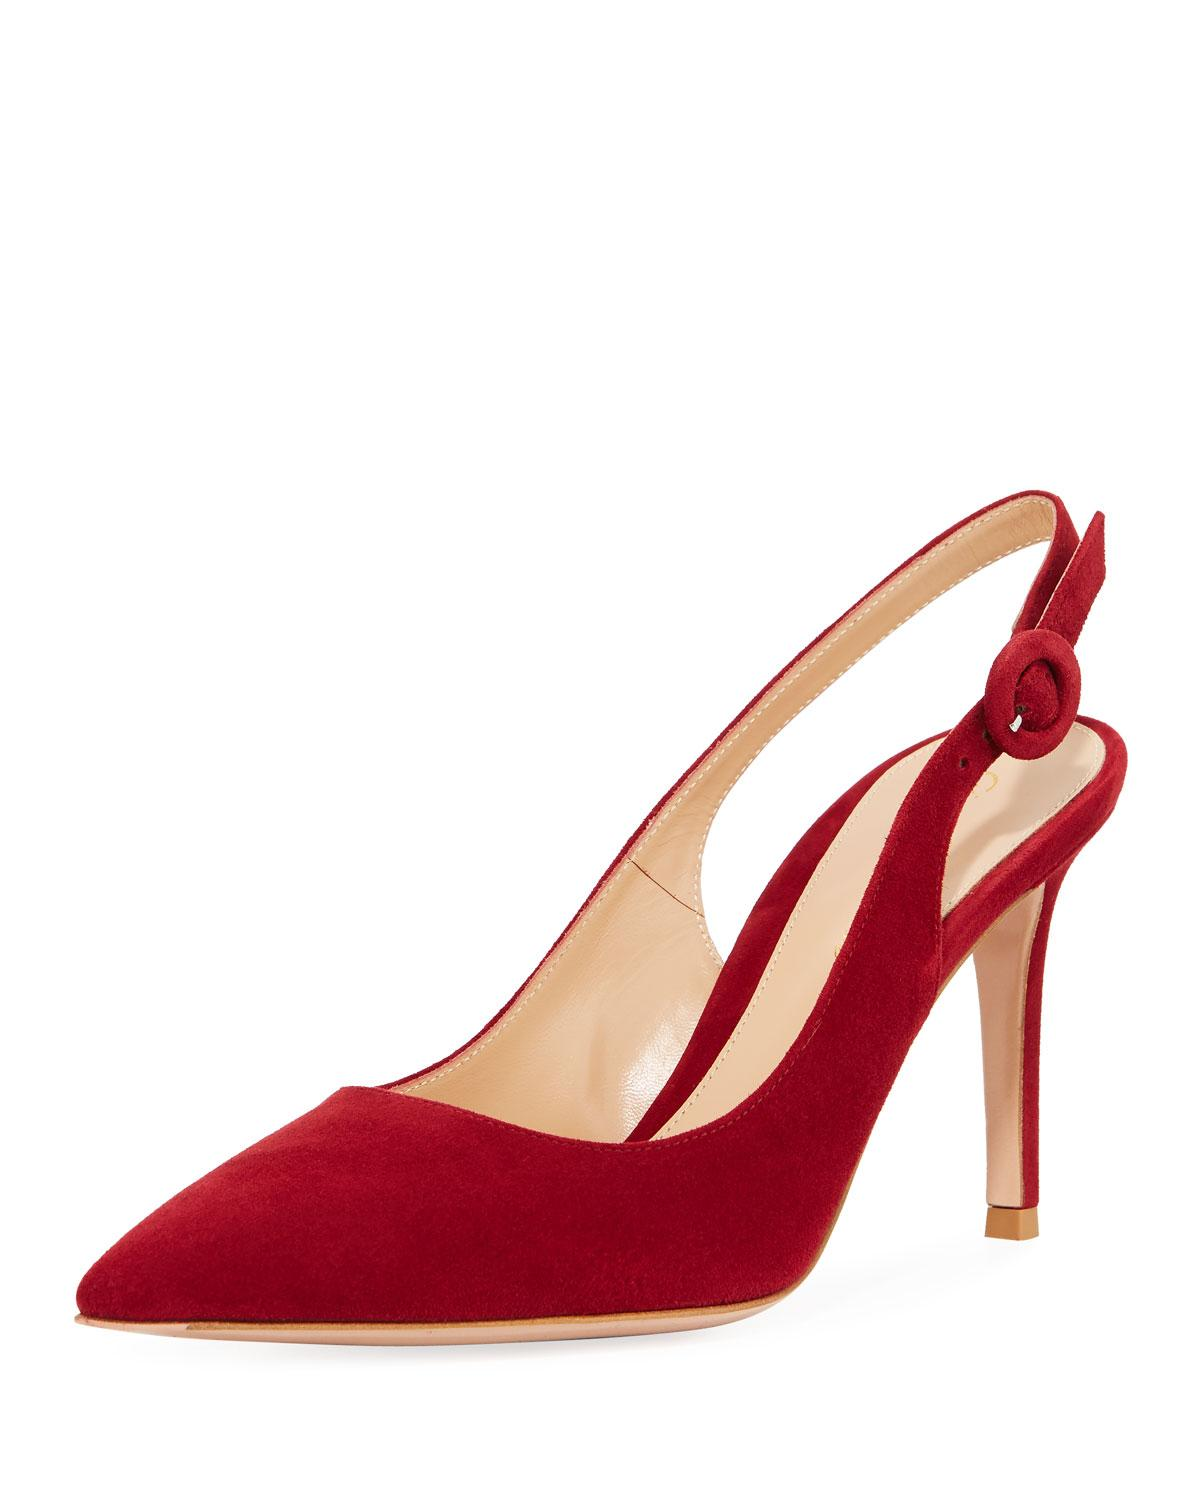 3a12c9ce633 Lyst - Gianvito Rossi Suede Pointed-toe Slingback Pumps in Red